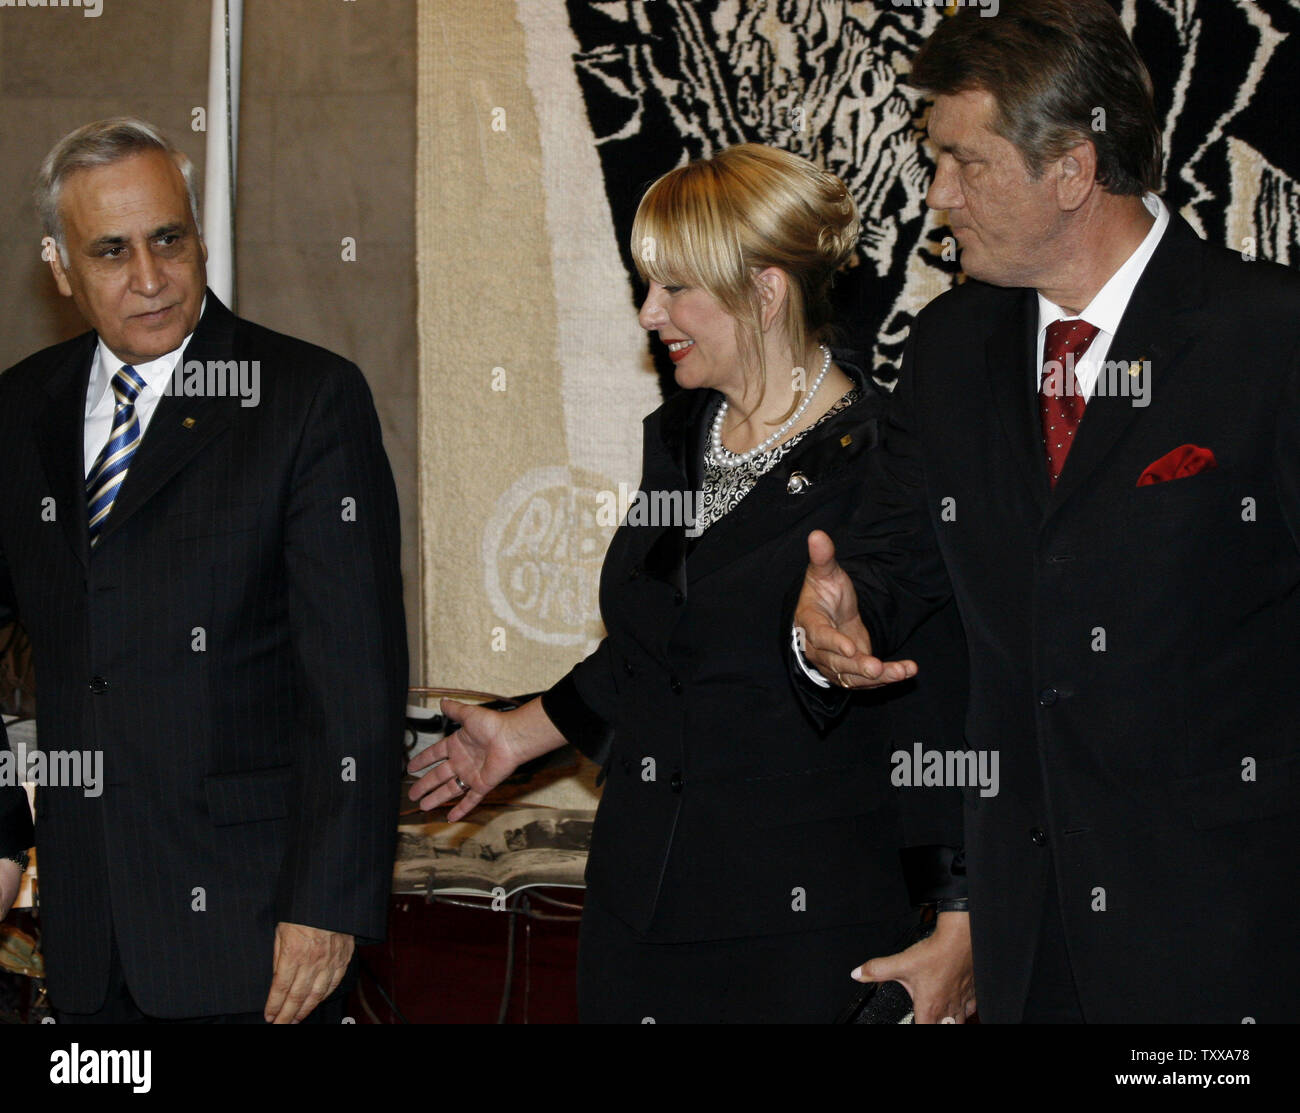 Ukraine's President Viktor Yushchenko (R) with his wife Ekaterina welcomes Israeli President Moshe Katsav (L) at the opening ceremony of an exhibition devoted to the Holocaust in Kiev on September 26, 2006. Moshe Katsav arrived in Kiev to take part in commemorations marking the 65th anniversary of the Nazi massacre at Babi Yar.  (UPI Photo/Sergey Starostenko) - Stock Image